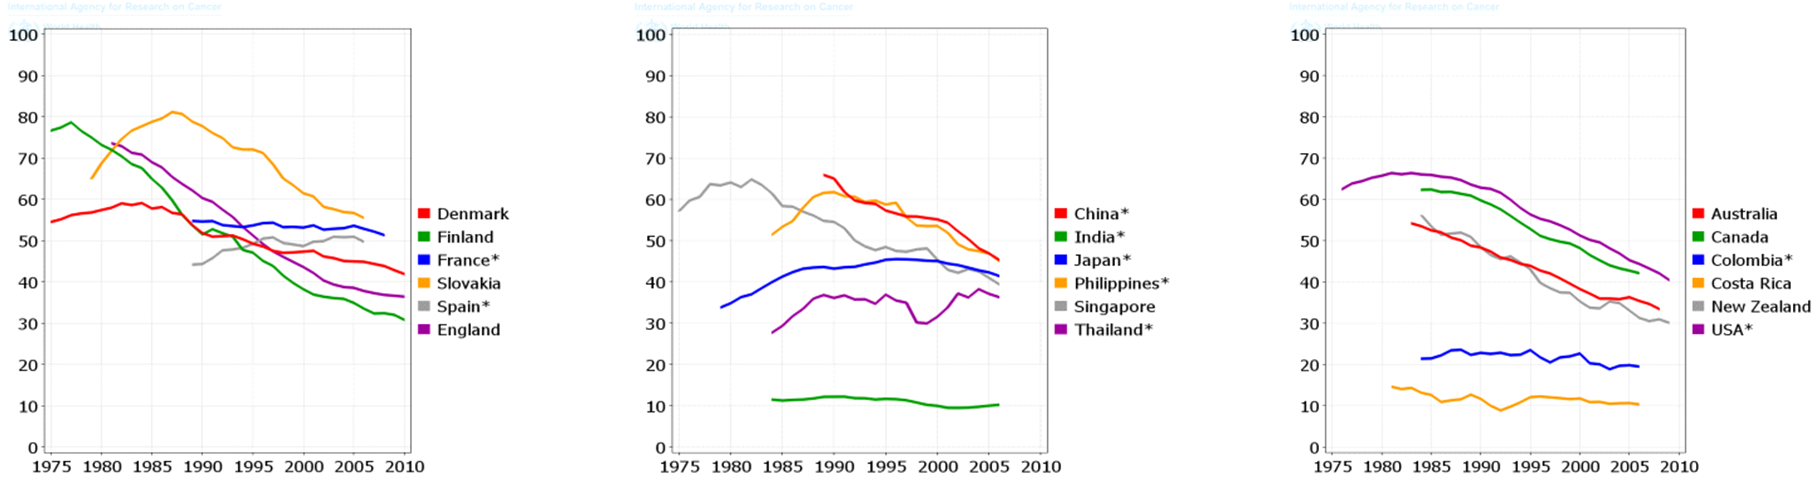 Figure 4 Trends in Age-Standardized Incidence Rate (ASIR) of lung cancer in selected countries (per 100,000men)